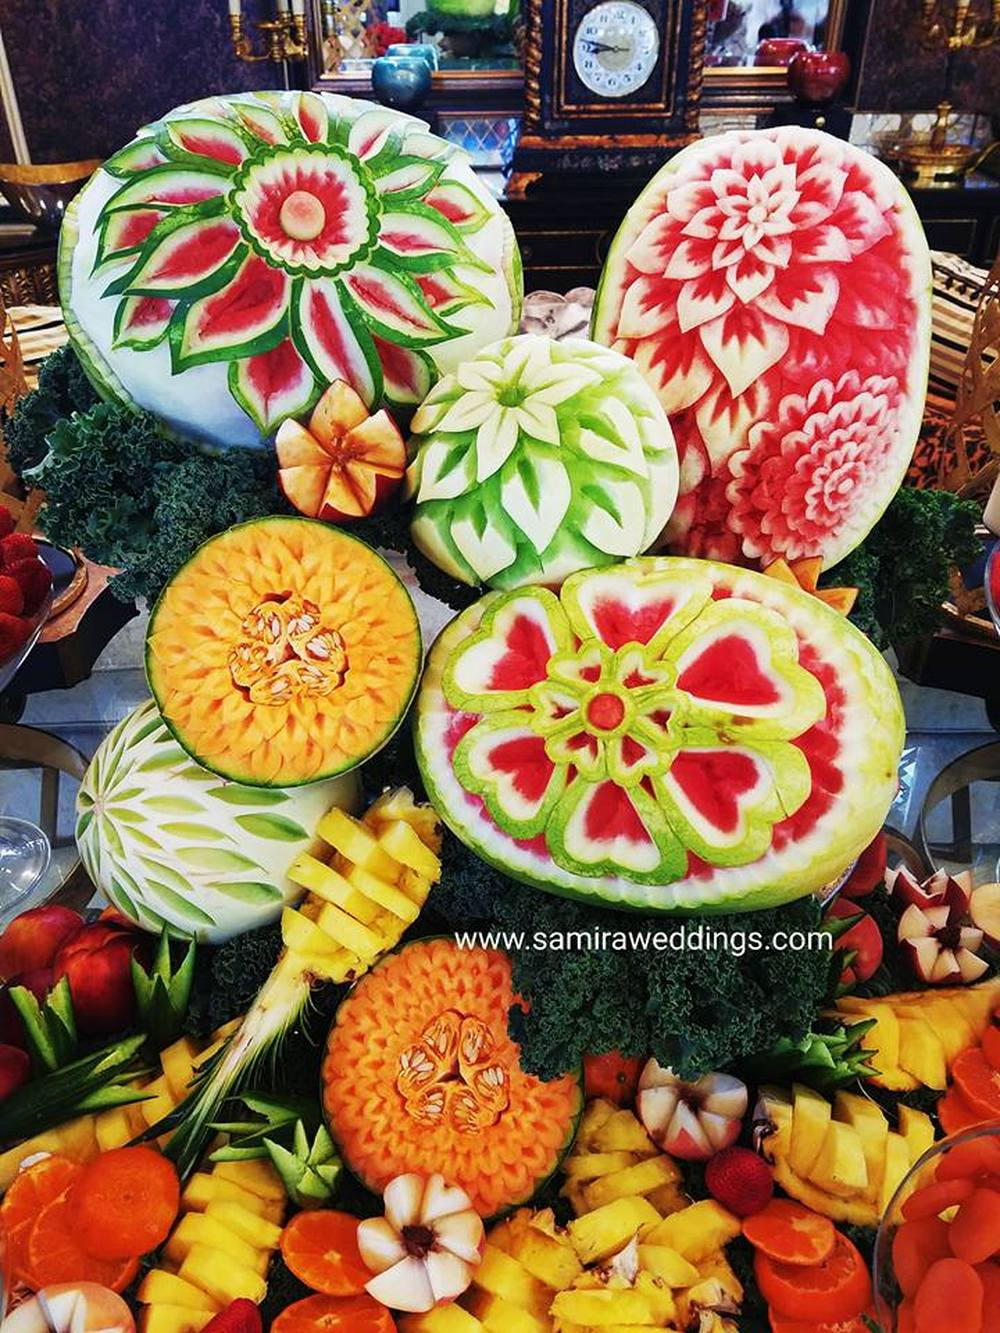 fruit display  Persian Wedding and Party Services Photos By Samira Weddings  events